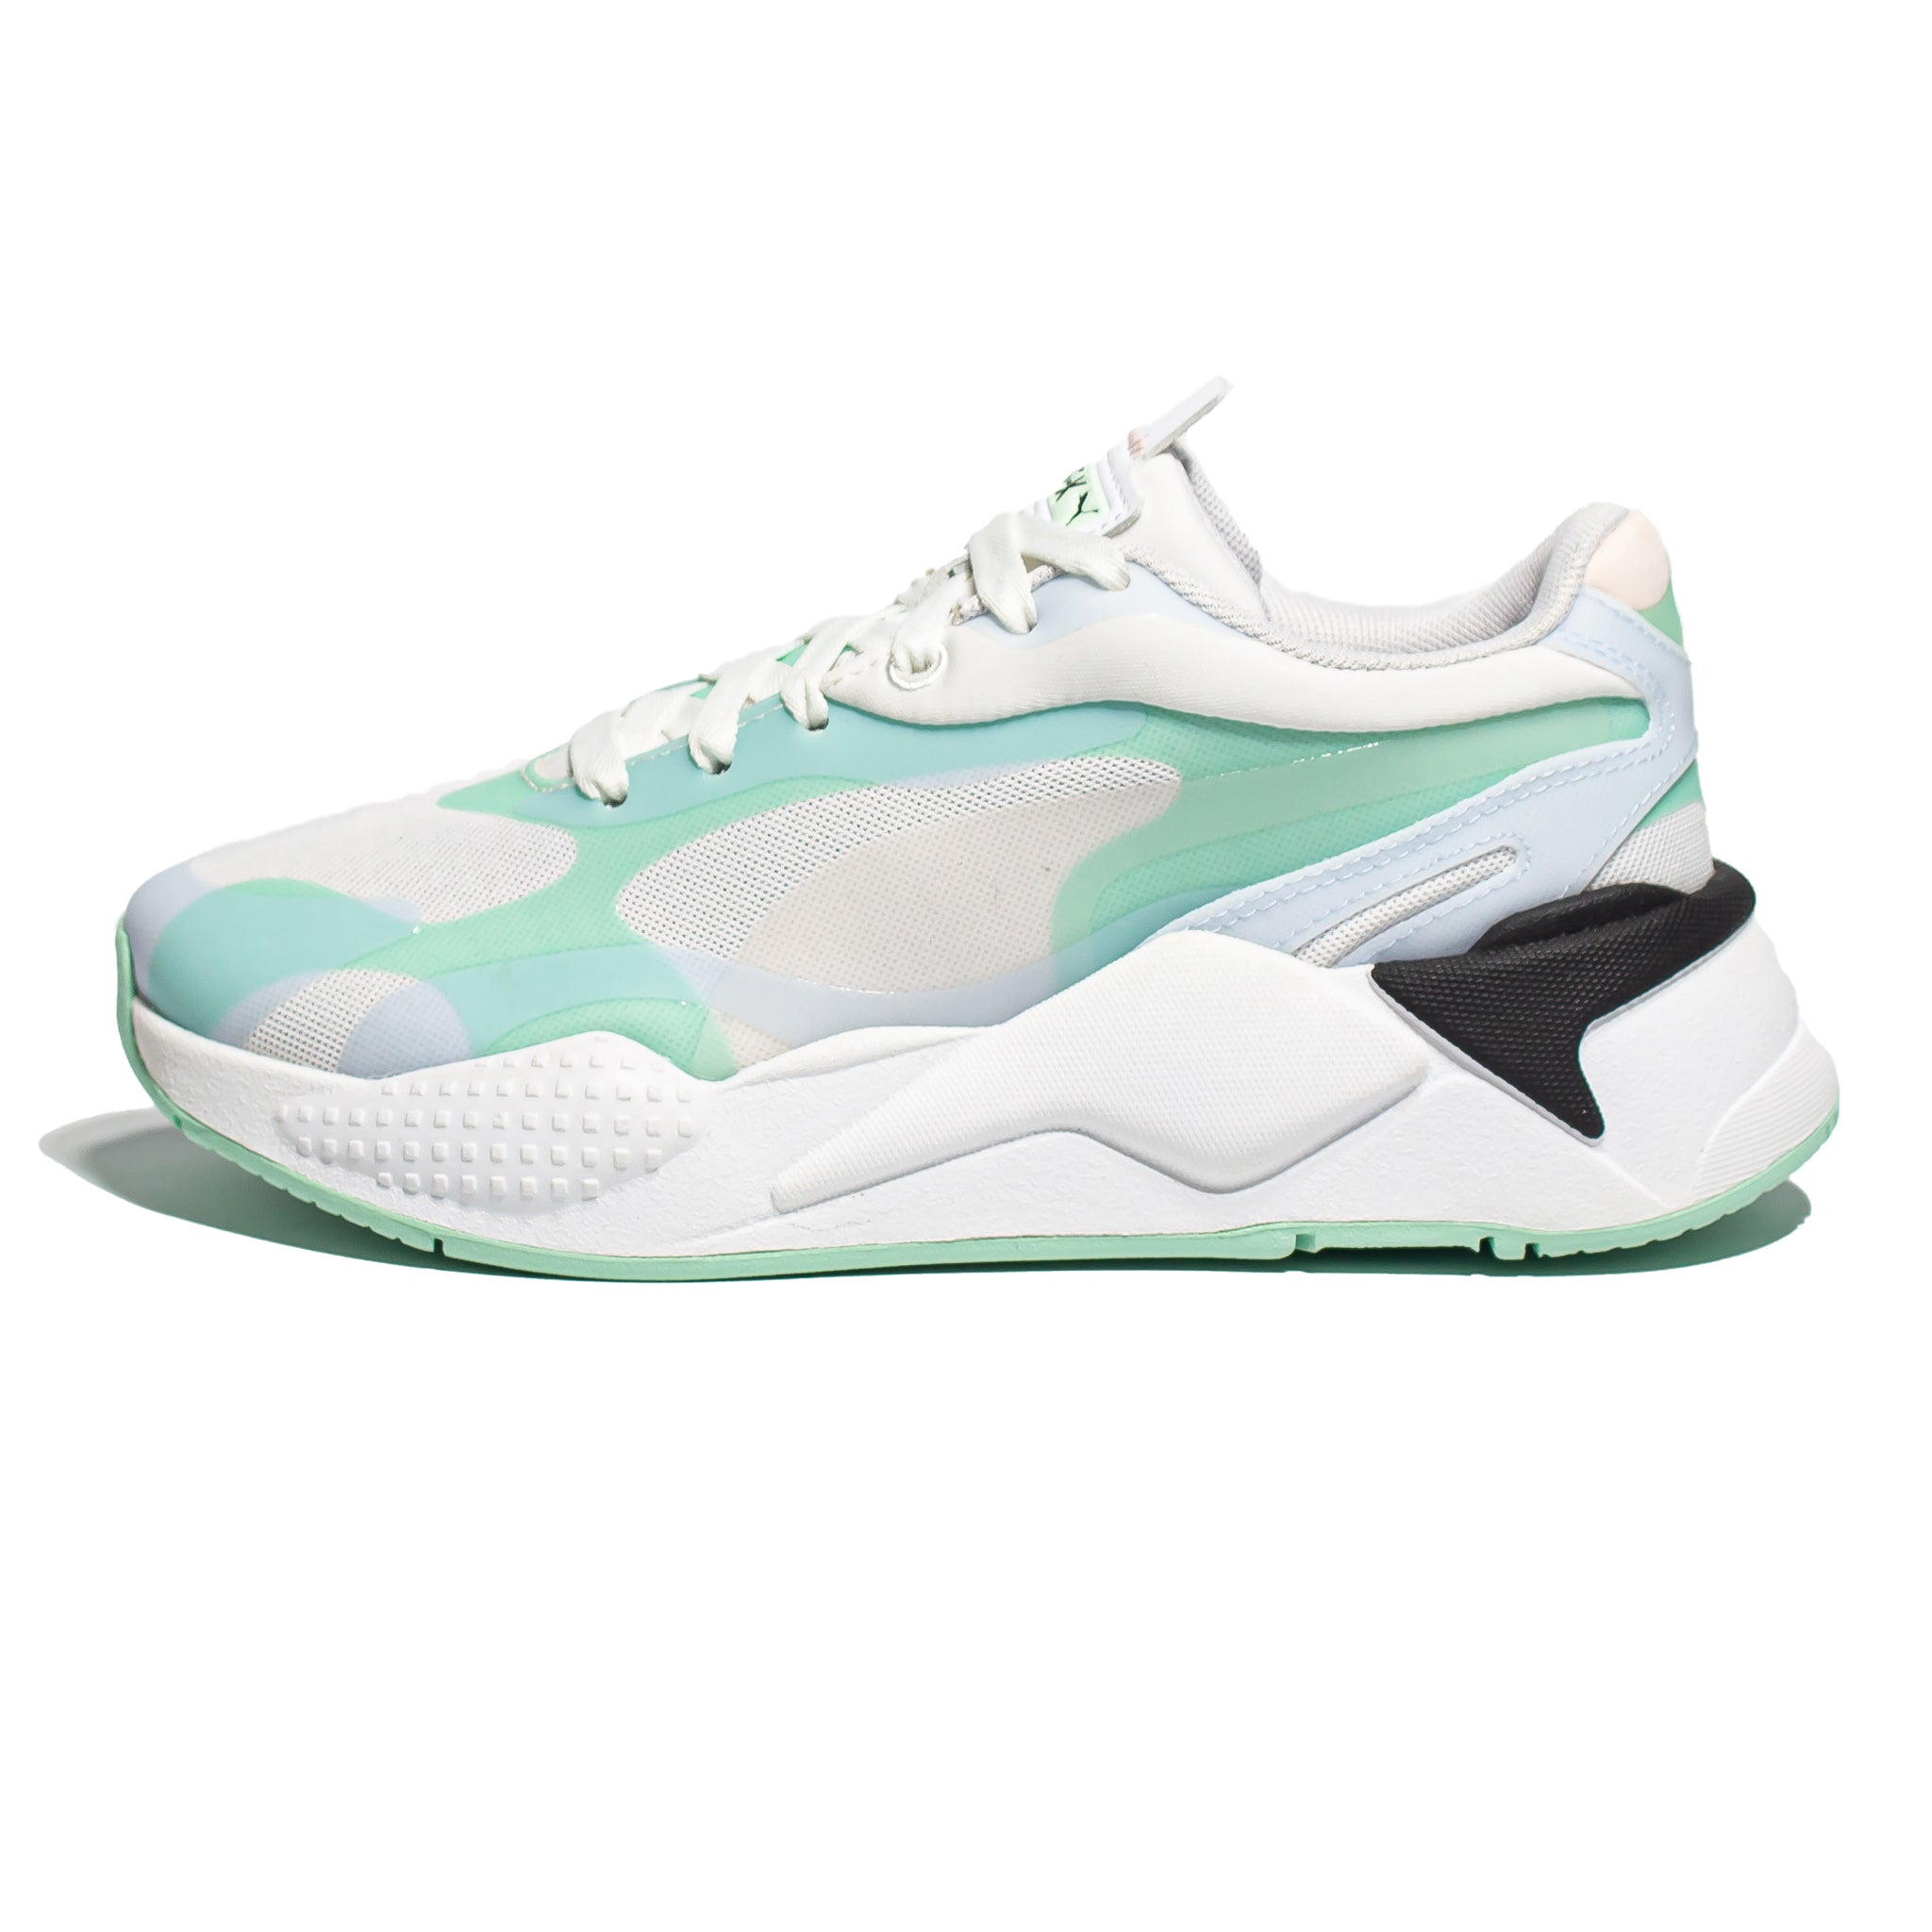 Puma RS-X3 Plas_Tech Mist Green